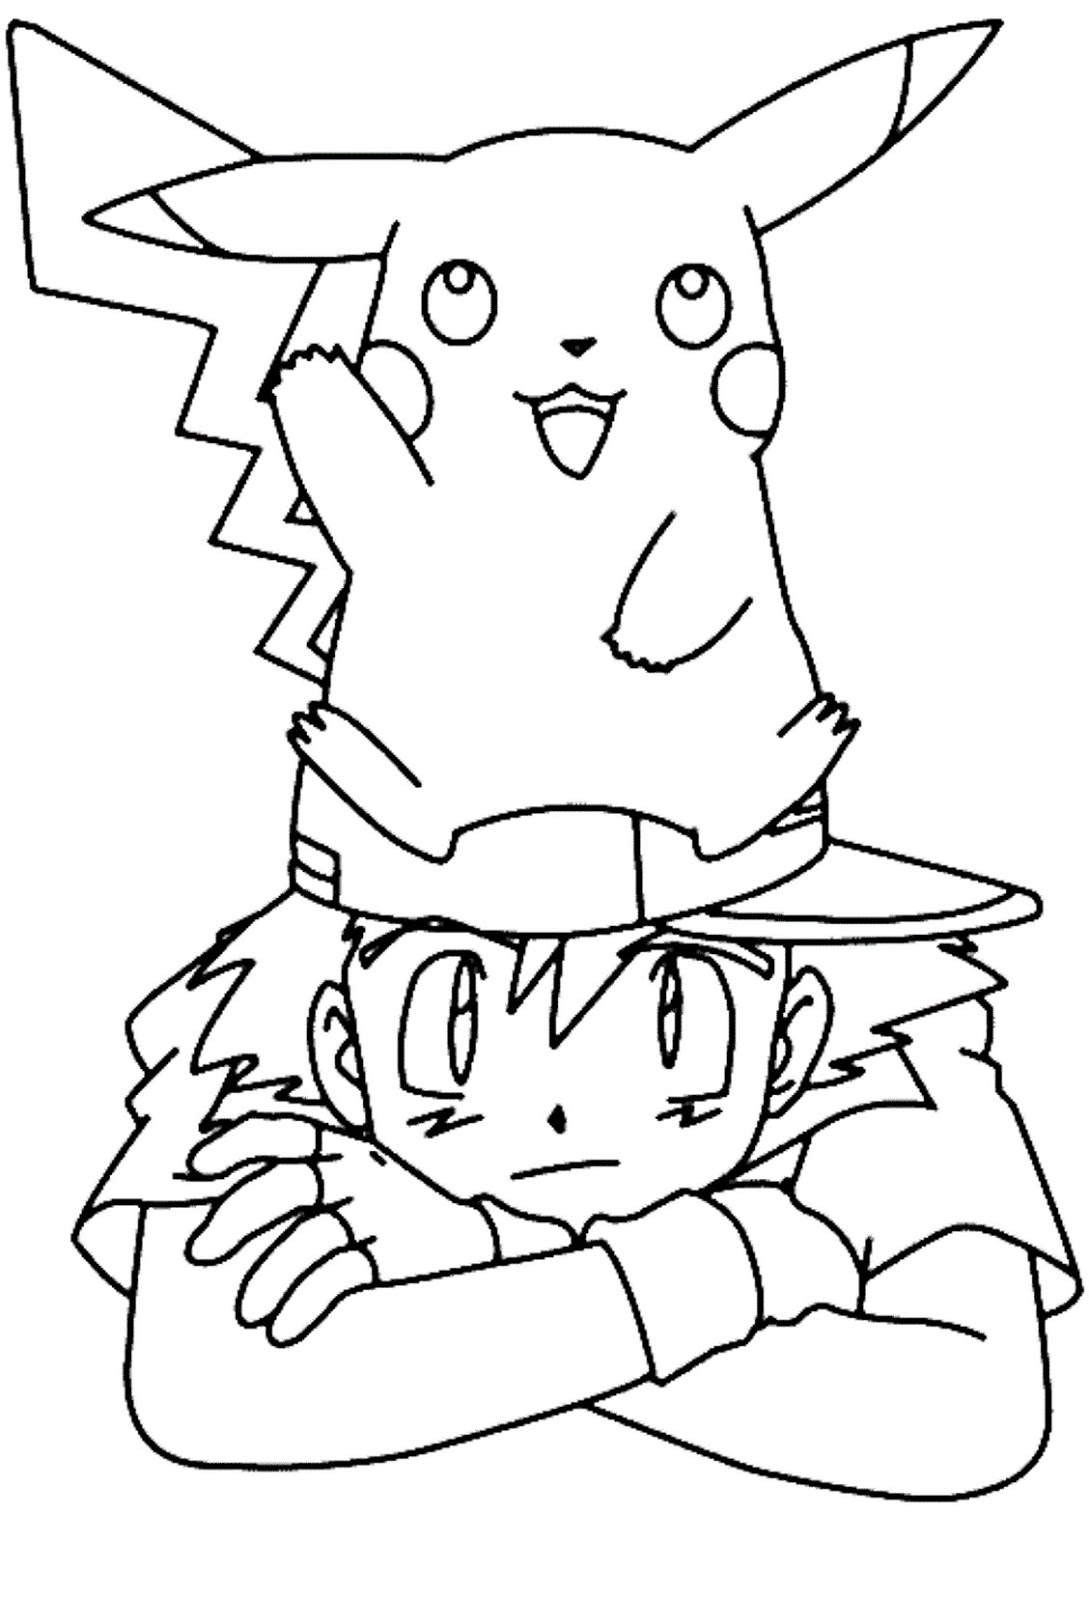 cool pokemon ash and pikachu coloring pages free printable